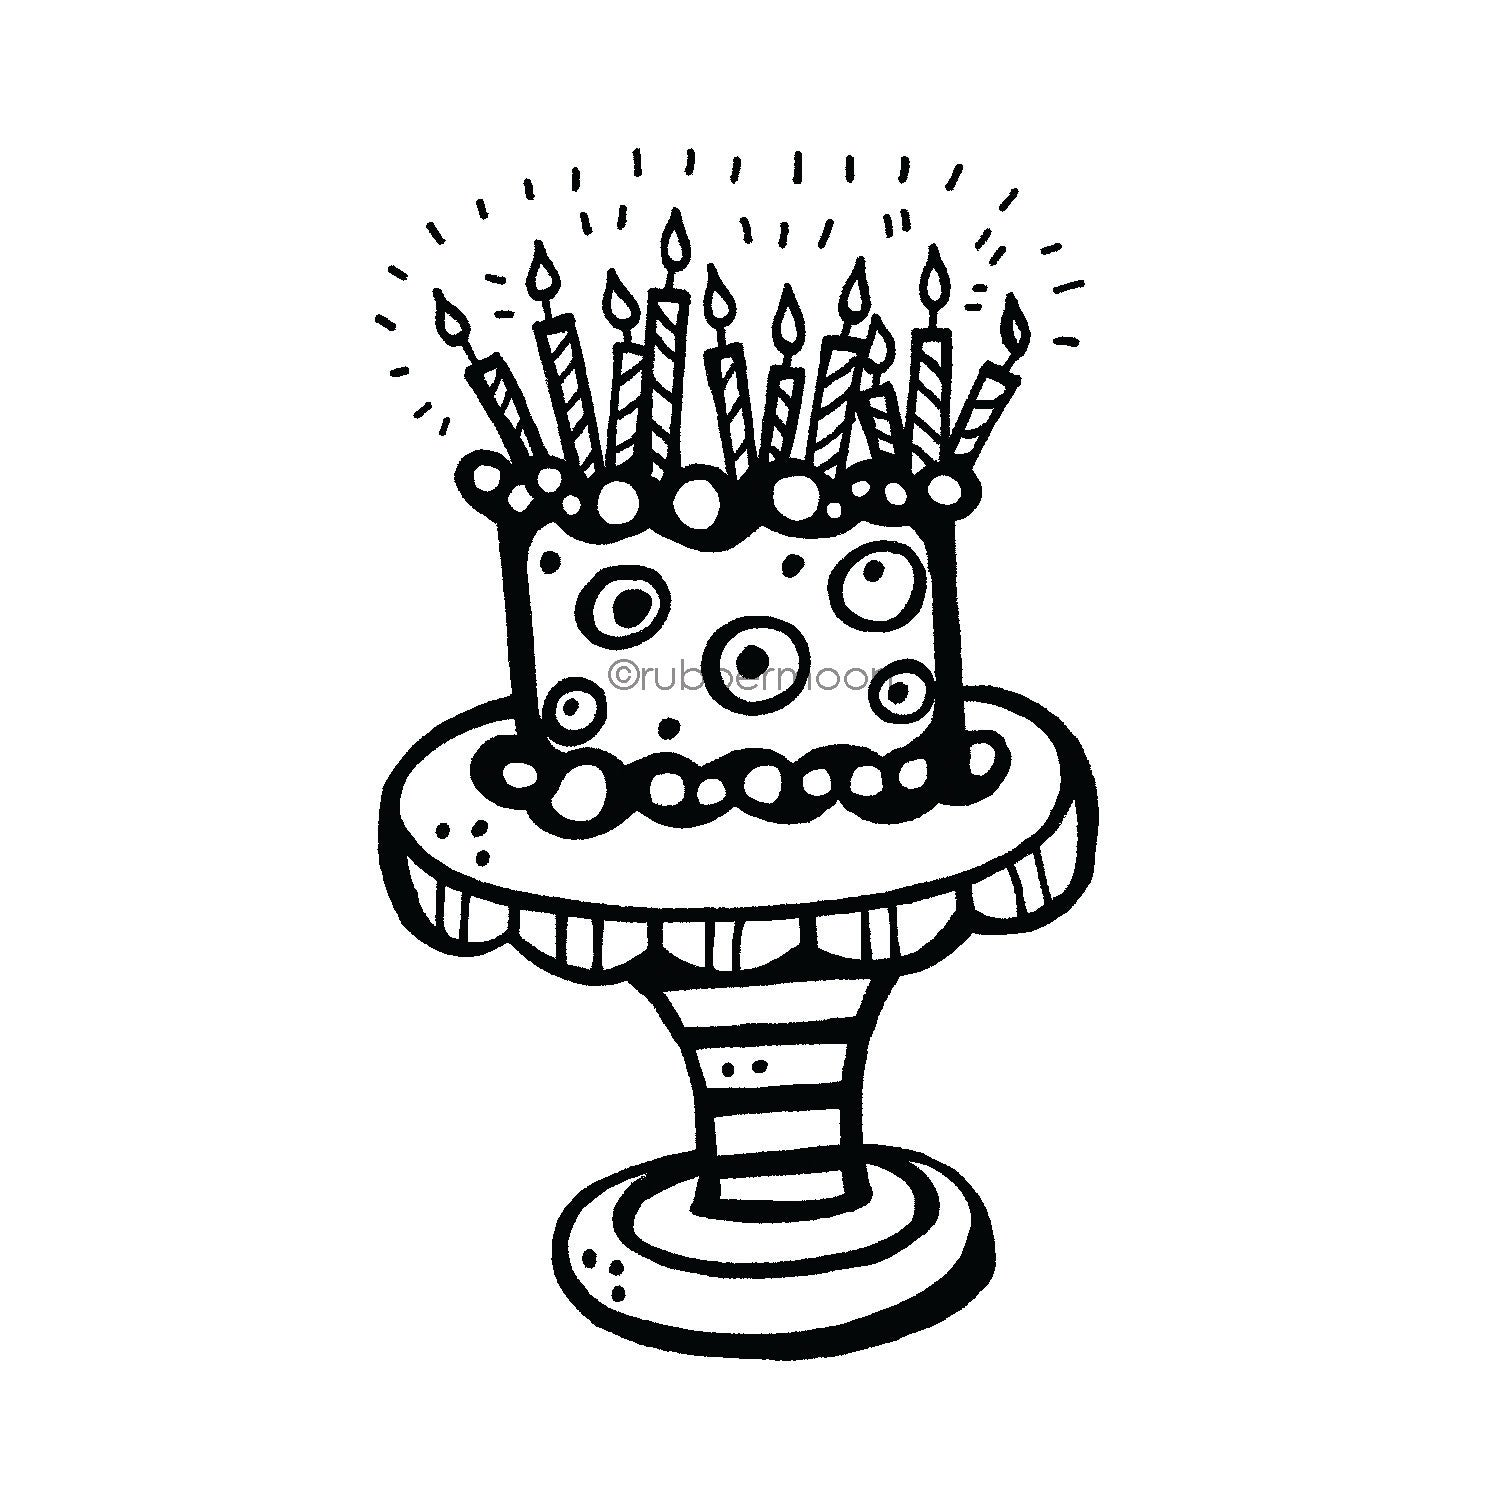 Kim Geiser | KG7420J - Birthday Cake - Rubber Art Stamp